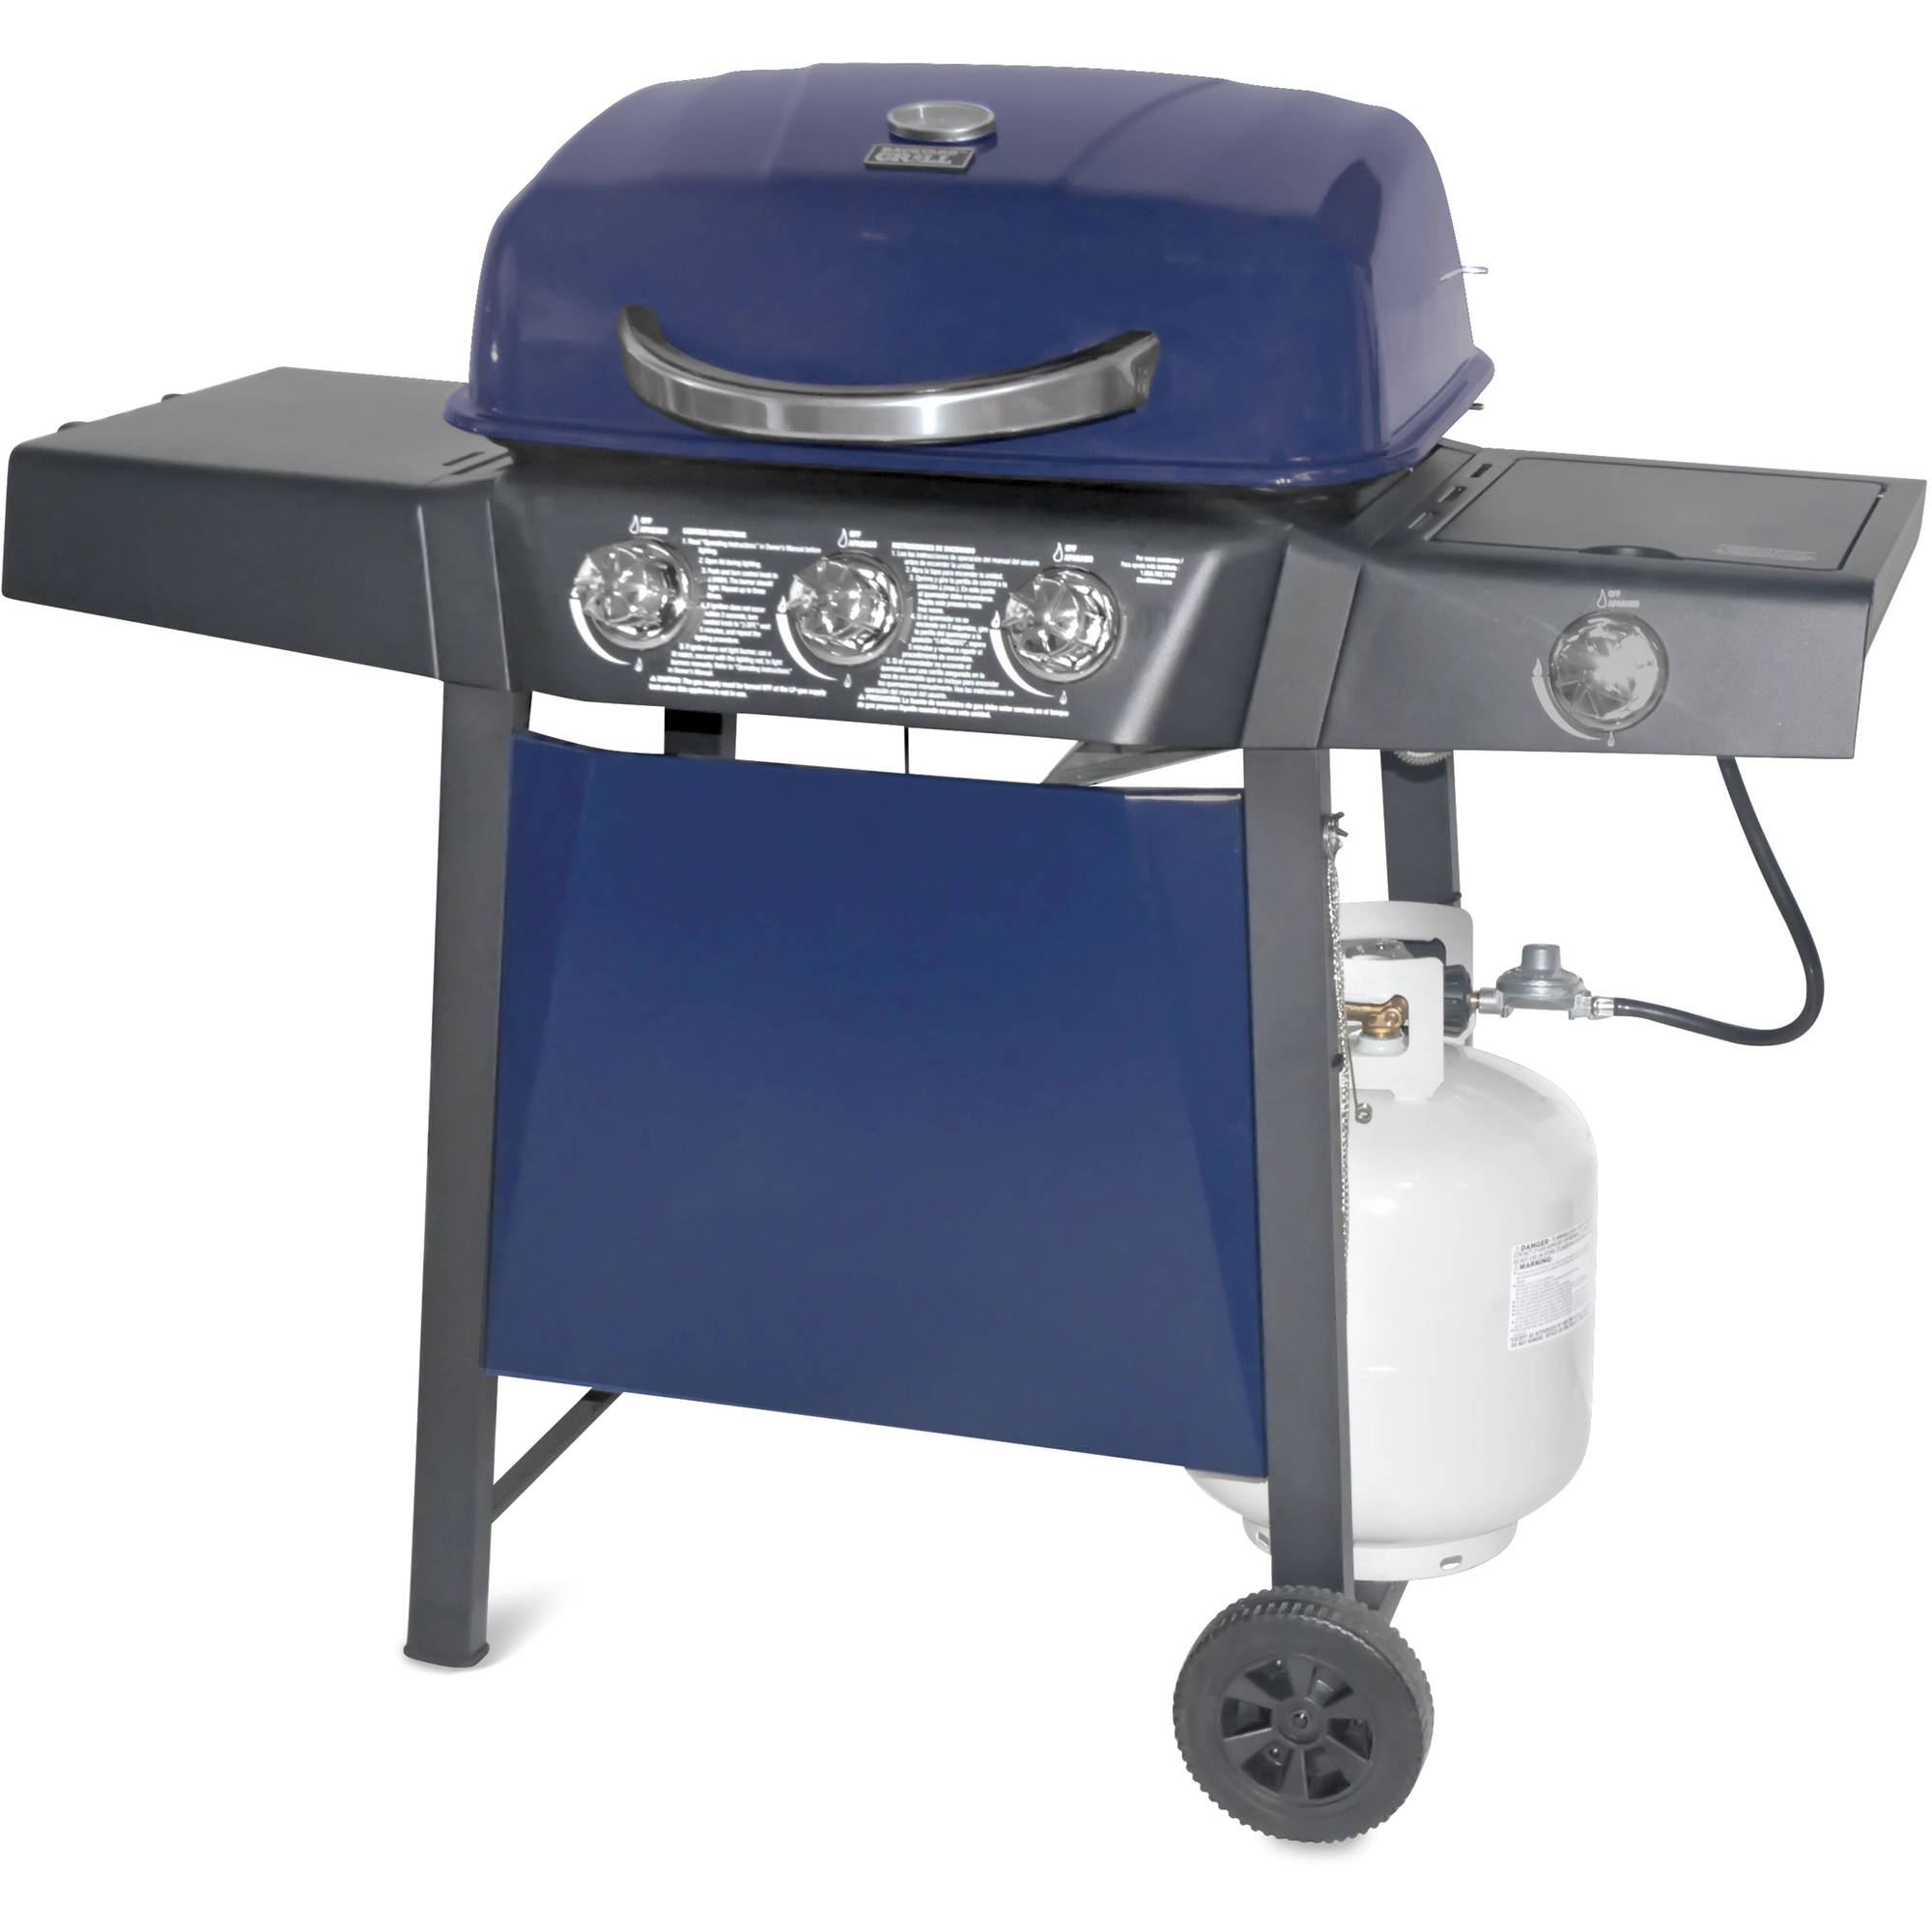 walmart 3 burner lp gas grill blue with side burner walmart com